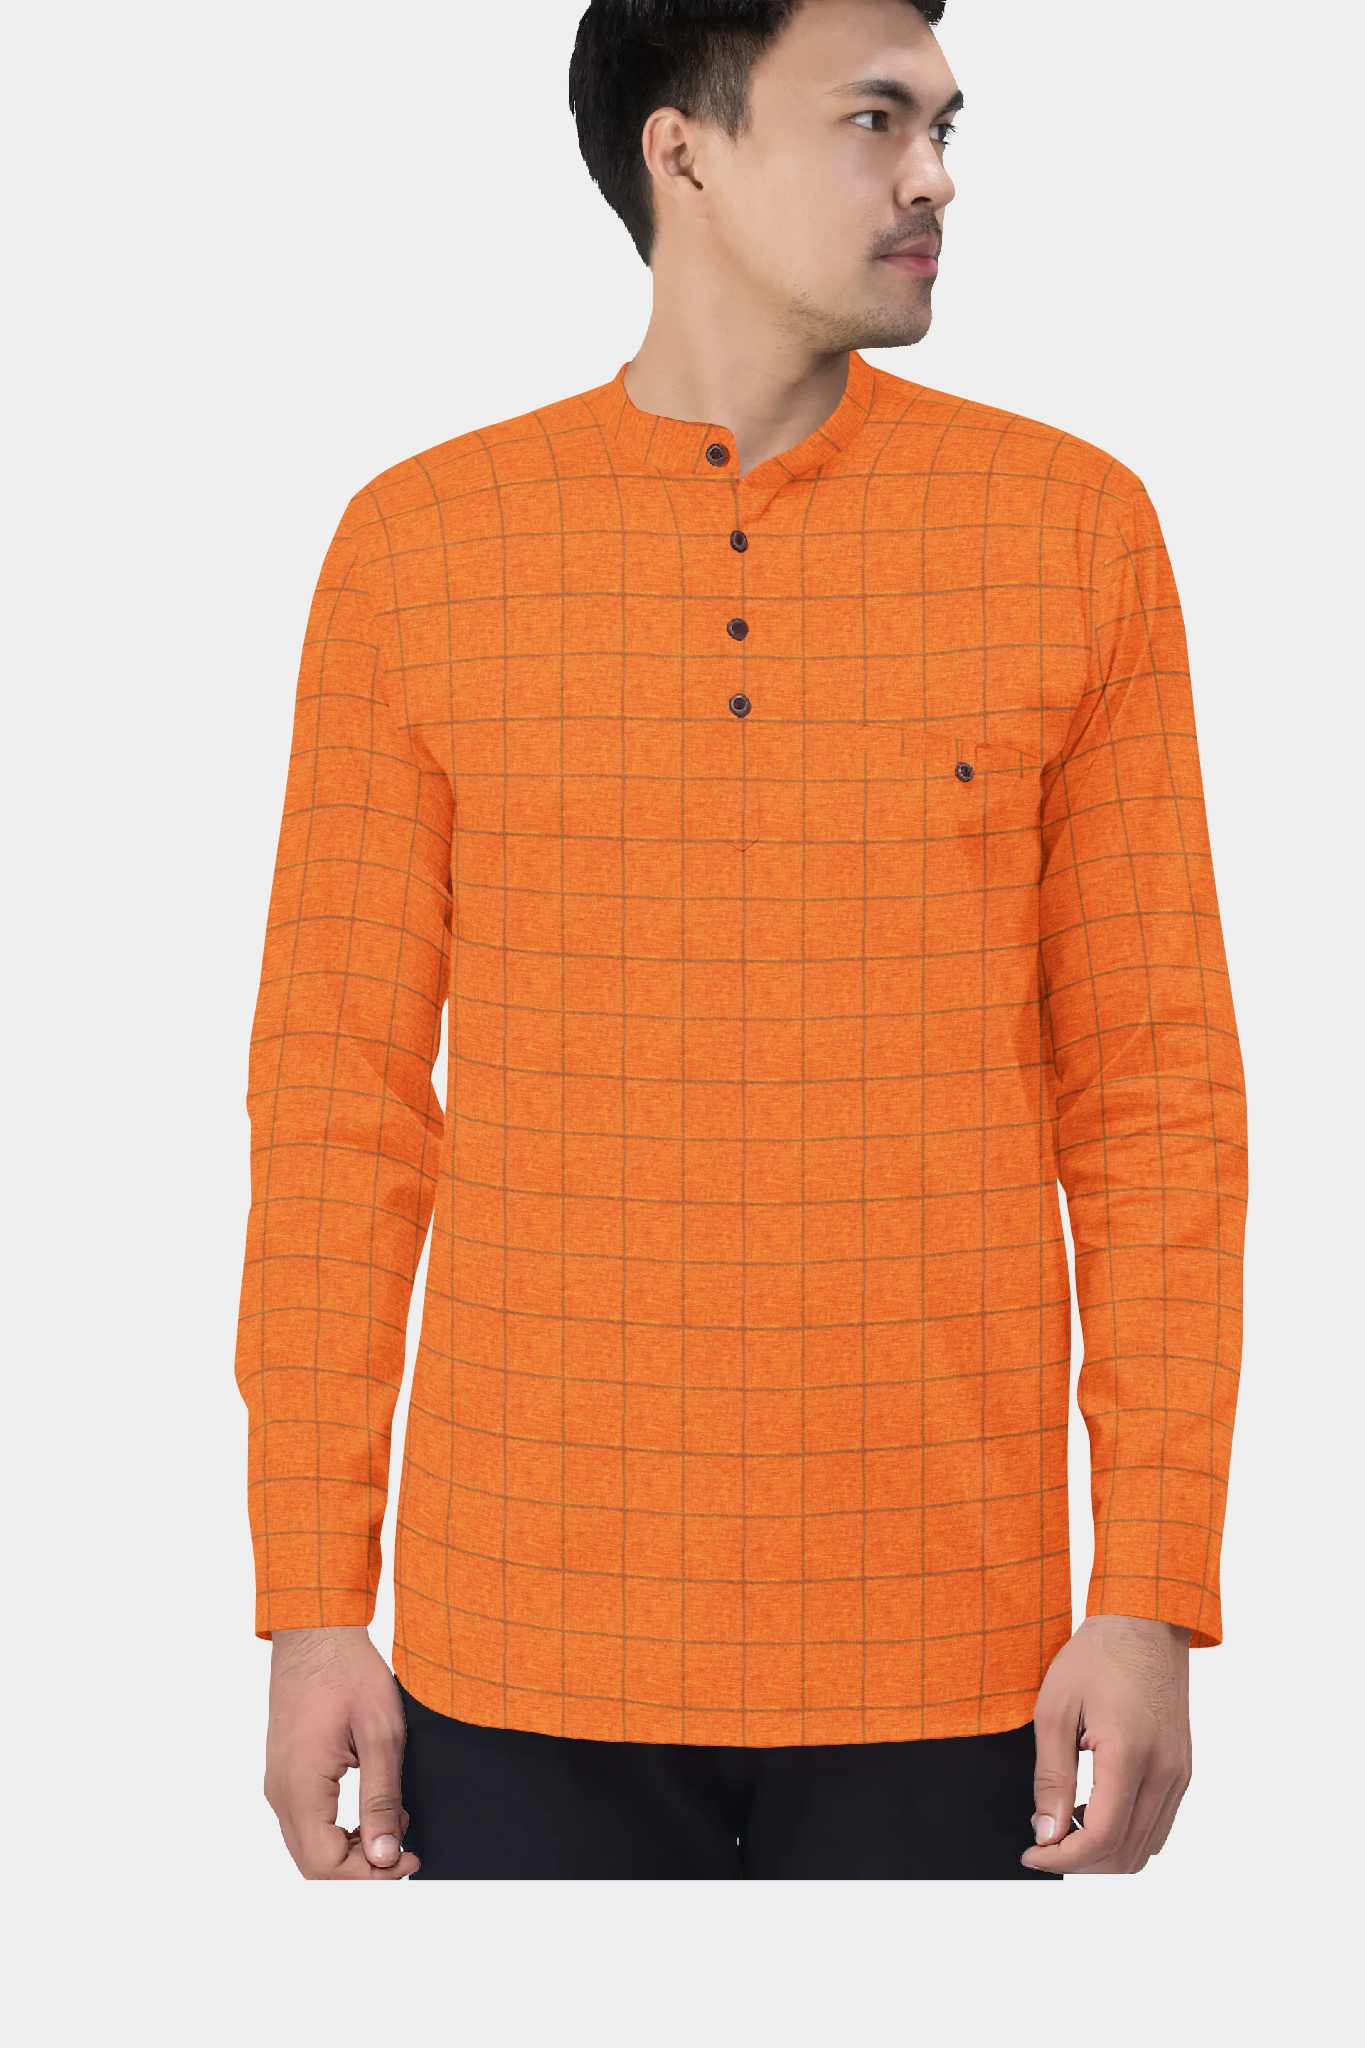 /home/customer/www/fabartcraft.com/public_html/uploadshttps://www.shopolics.com/uploads/images/medium/Orange-Black-Cotton-Short-Kurta-35448.jpg